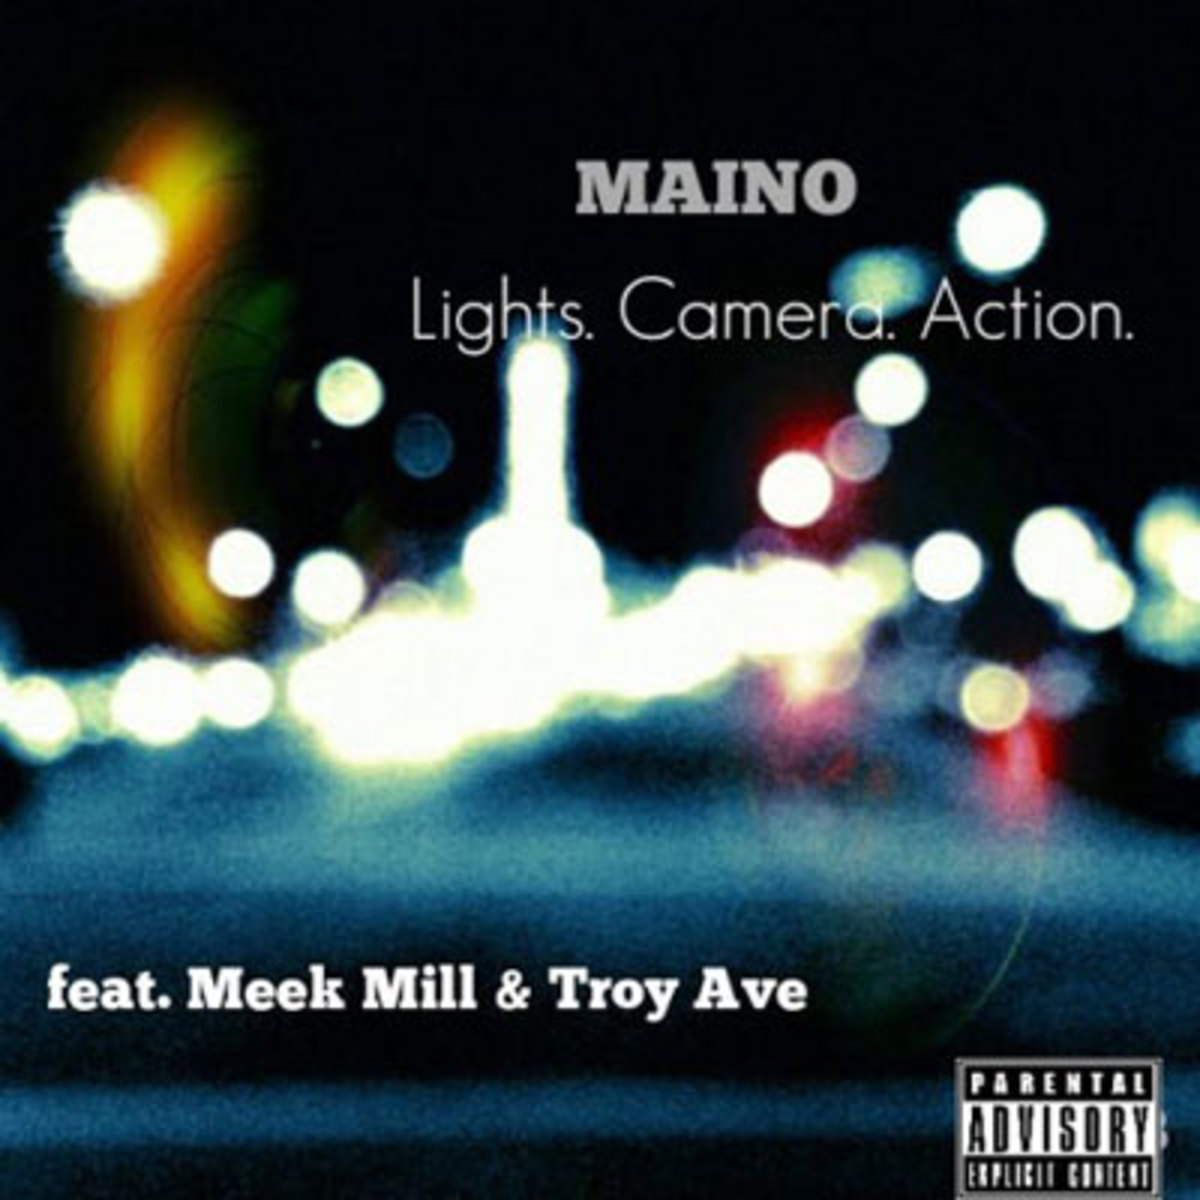 maino-lightscameraaction.jpg